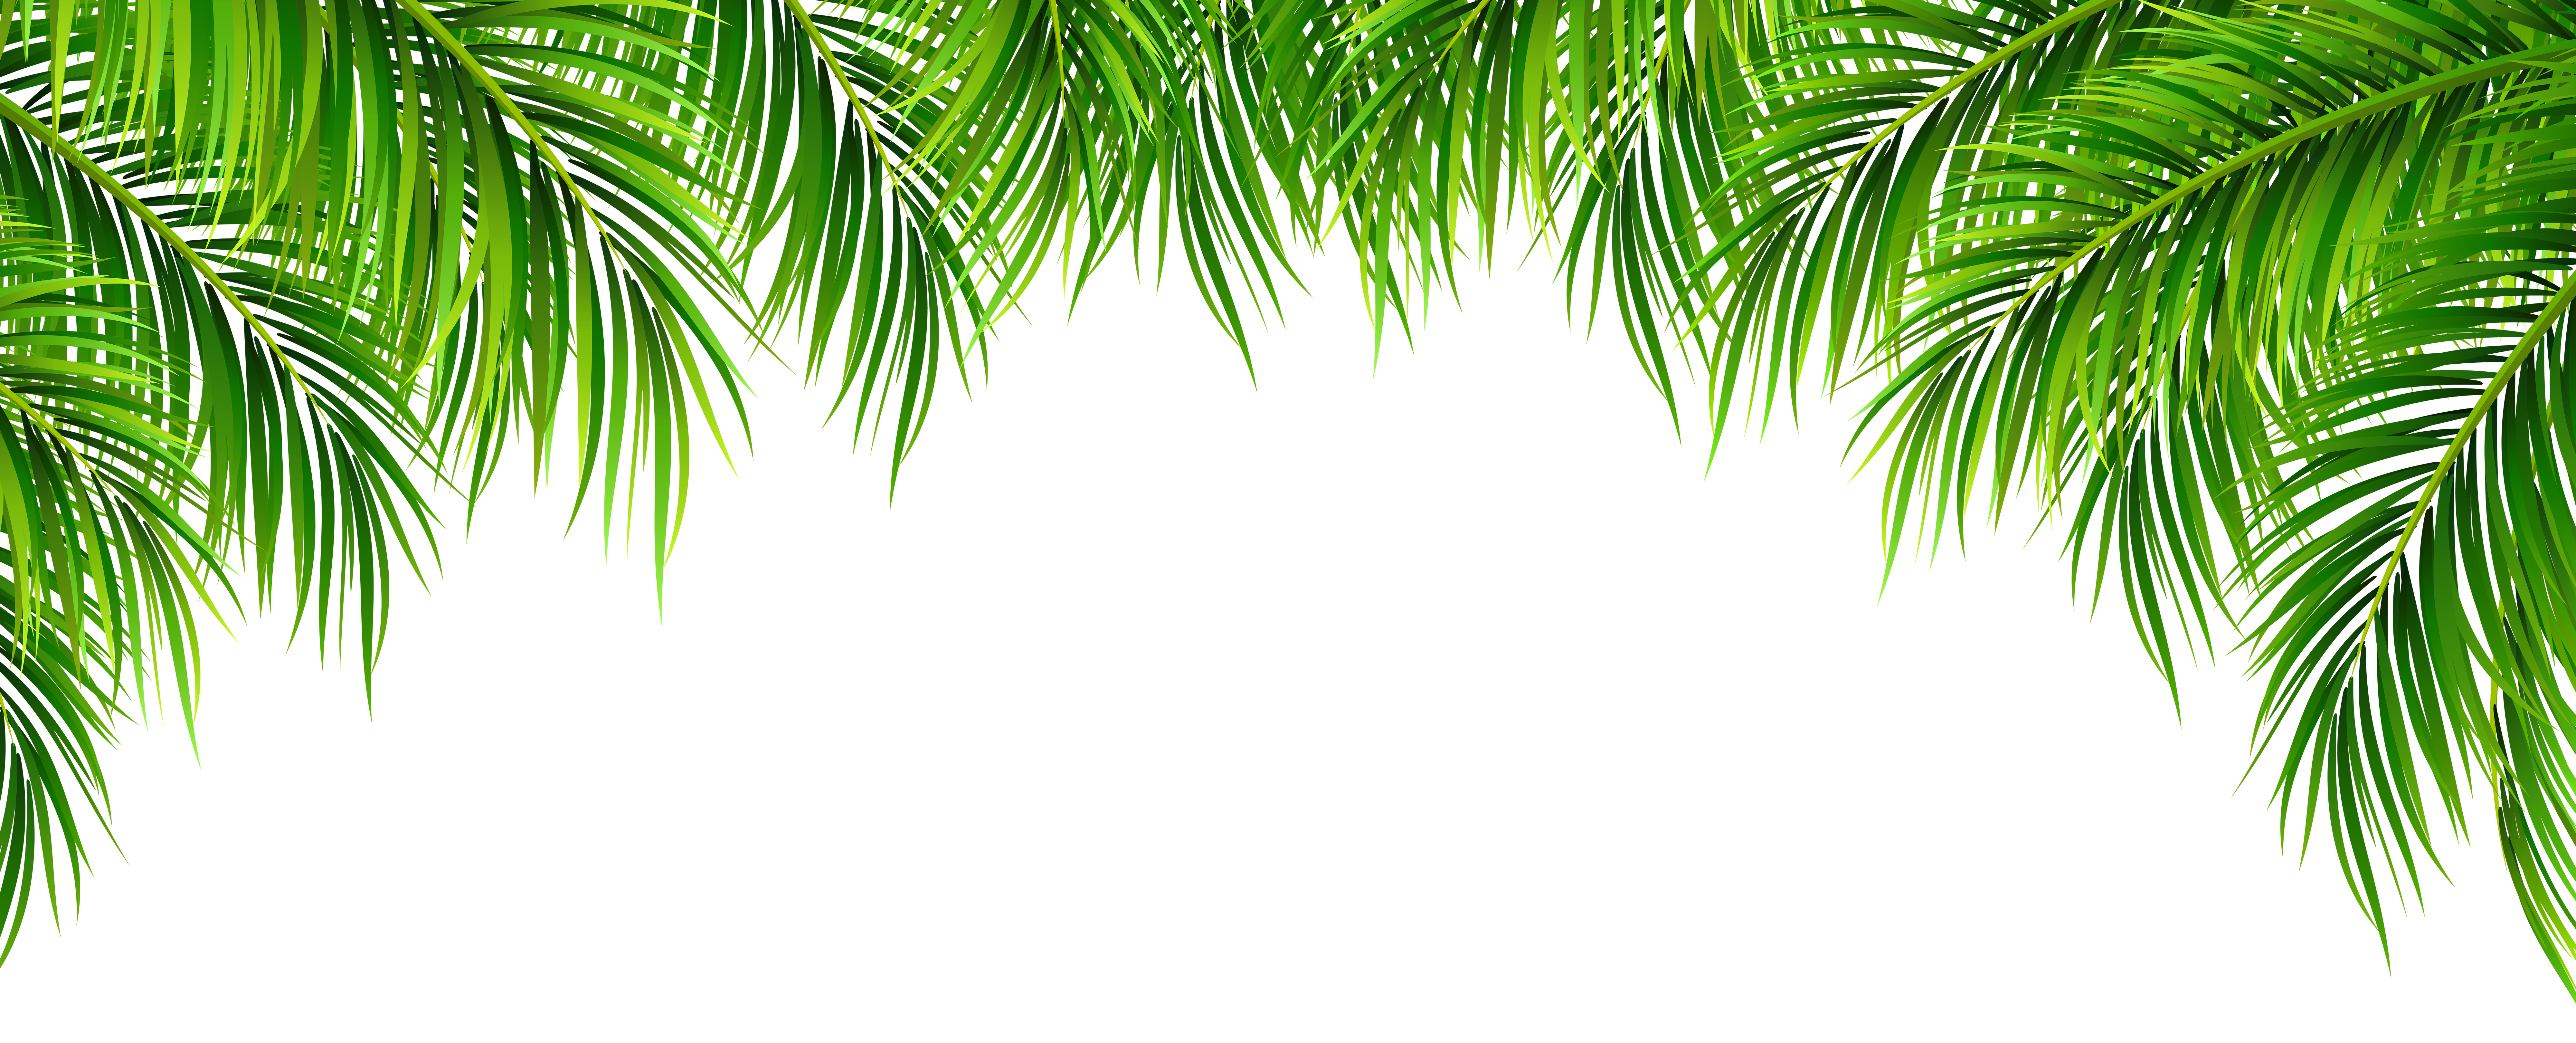 Palm Leaves Decor Png Clip Art Image Gallery Yopriceville High Quality Images And Transparent Png Free Clipart Palm Leaf Decor Leaf Decor Palm Leaves